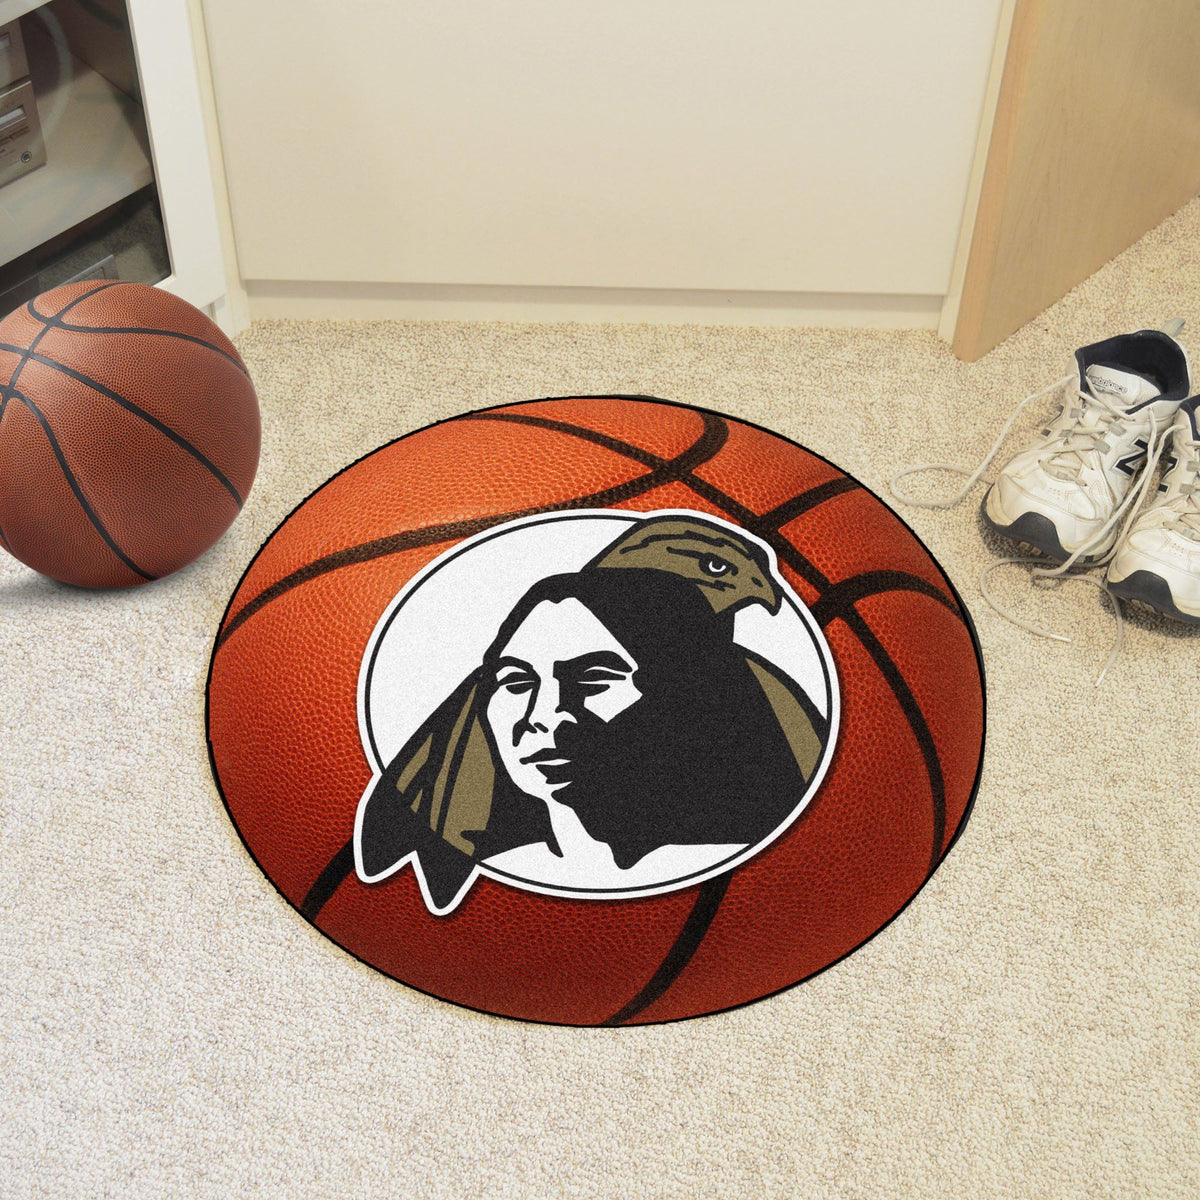 Collegiate - Basketball Mat: T - Z Collegiate Mats, Rectangular Mats, Basketball Mat, Collegiate, Home Fan Mats UNC Pembroke